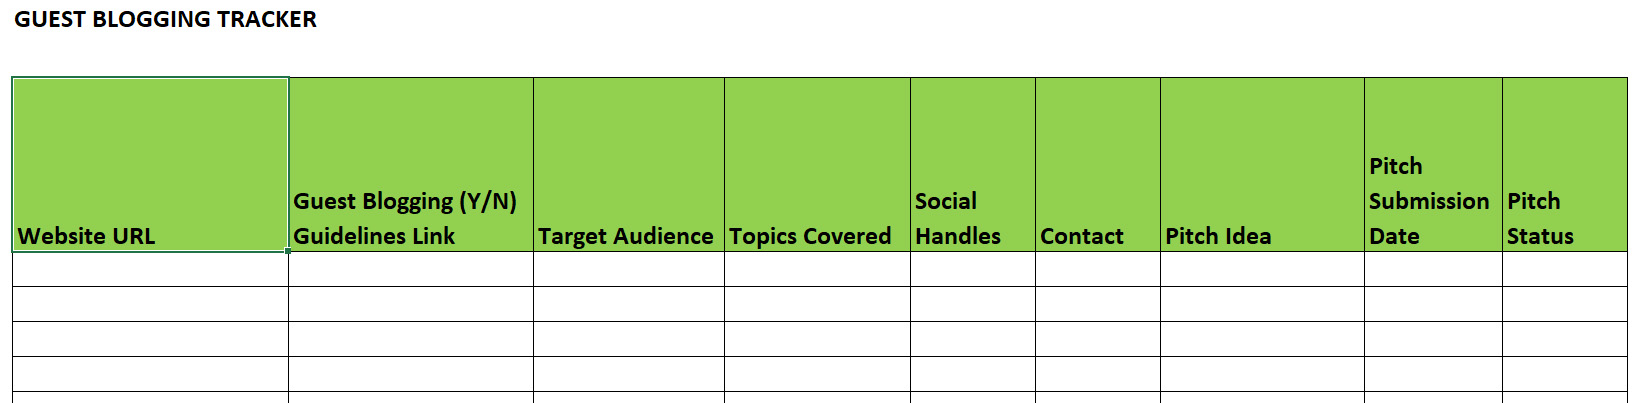 An image showing a template of a guest blogging tracker. The template shows columns for a website URL, guest blogging guidelines link, target audience, topics covered, social handles, contact, pitch ideas, pitch submission date, and pitch status.